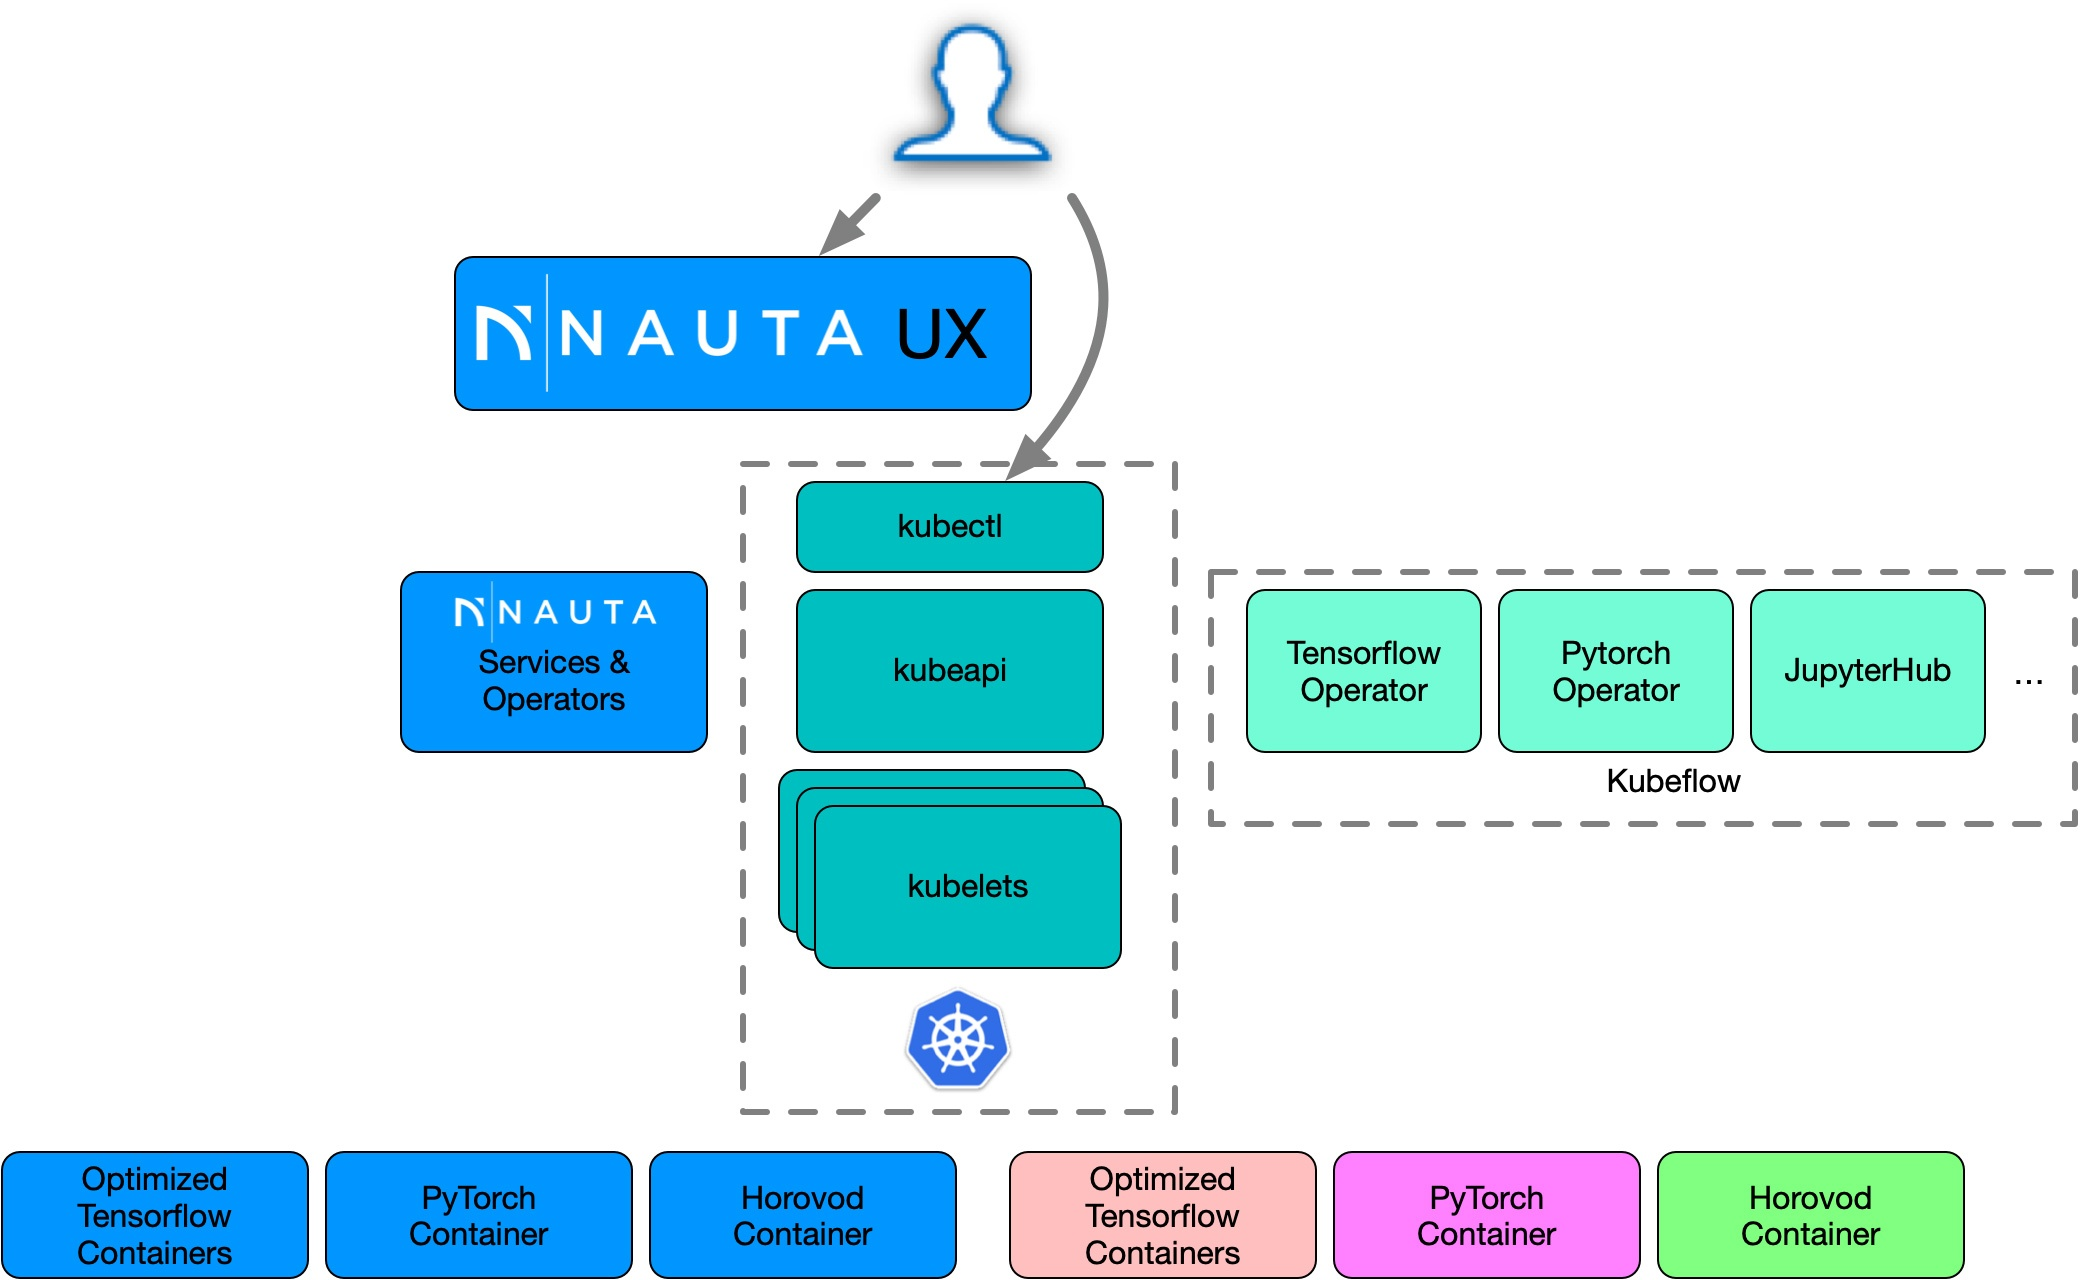 Nauta harnesses Kubeflow* intrinsics and open source best practices to provide a robust, easy-to-learn, easy-to-use way of training deep learning models on an enterprise cluster or cloud.